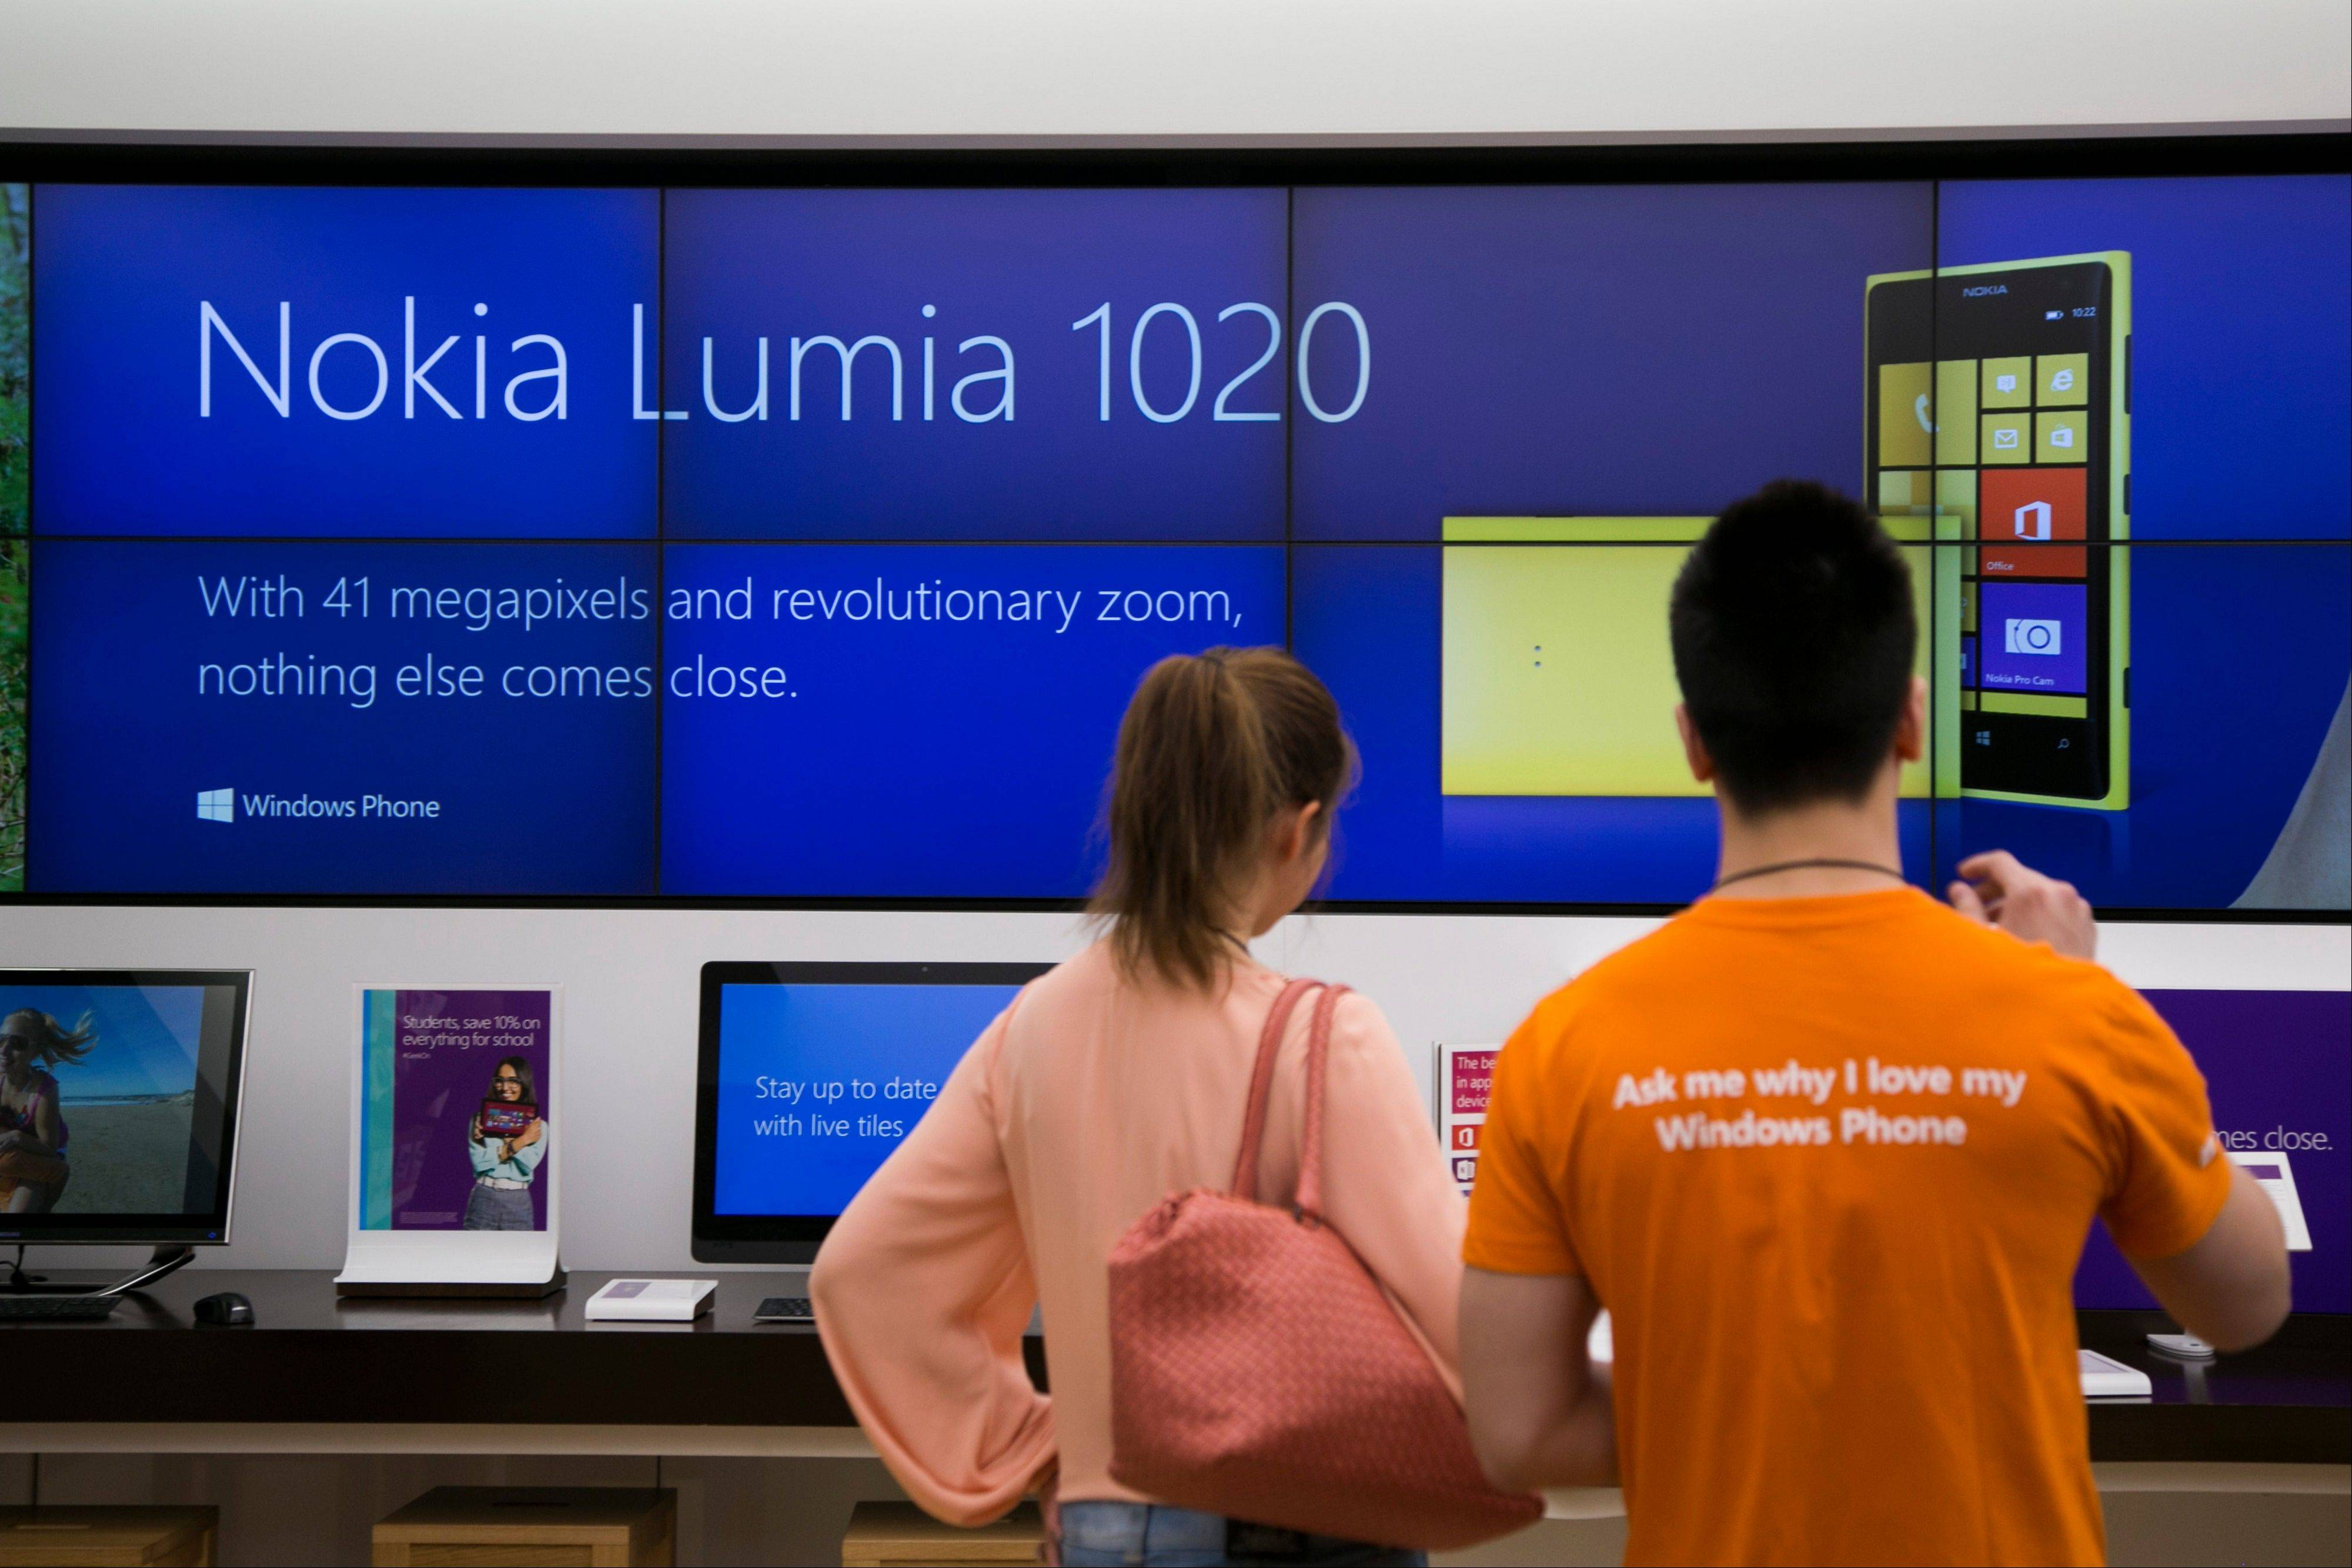 Sales associate Jacky Hom, right, assists customer Katie Guo with a product demo of the Nokia Oyj Lumia 1020 mobile device at a Microsoft Corp. store in Boston.